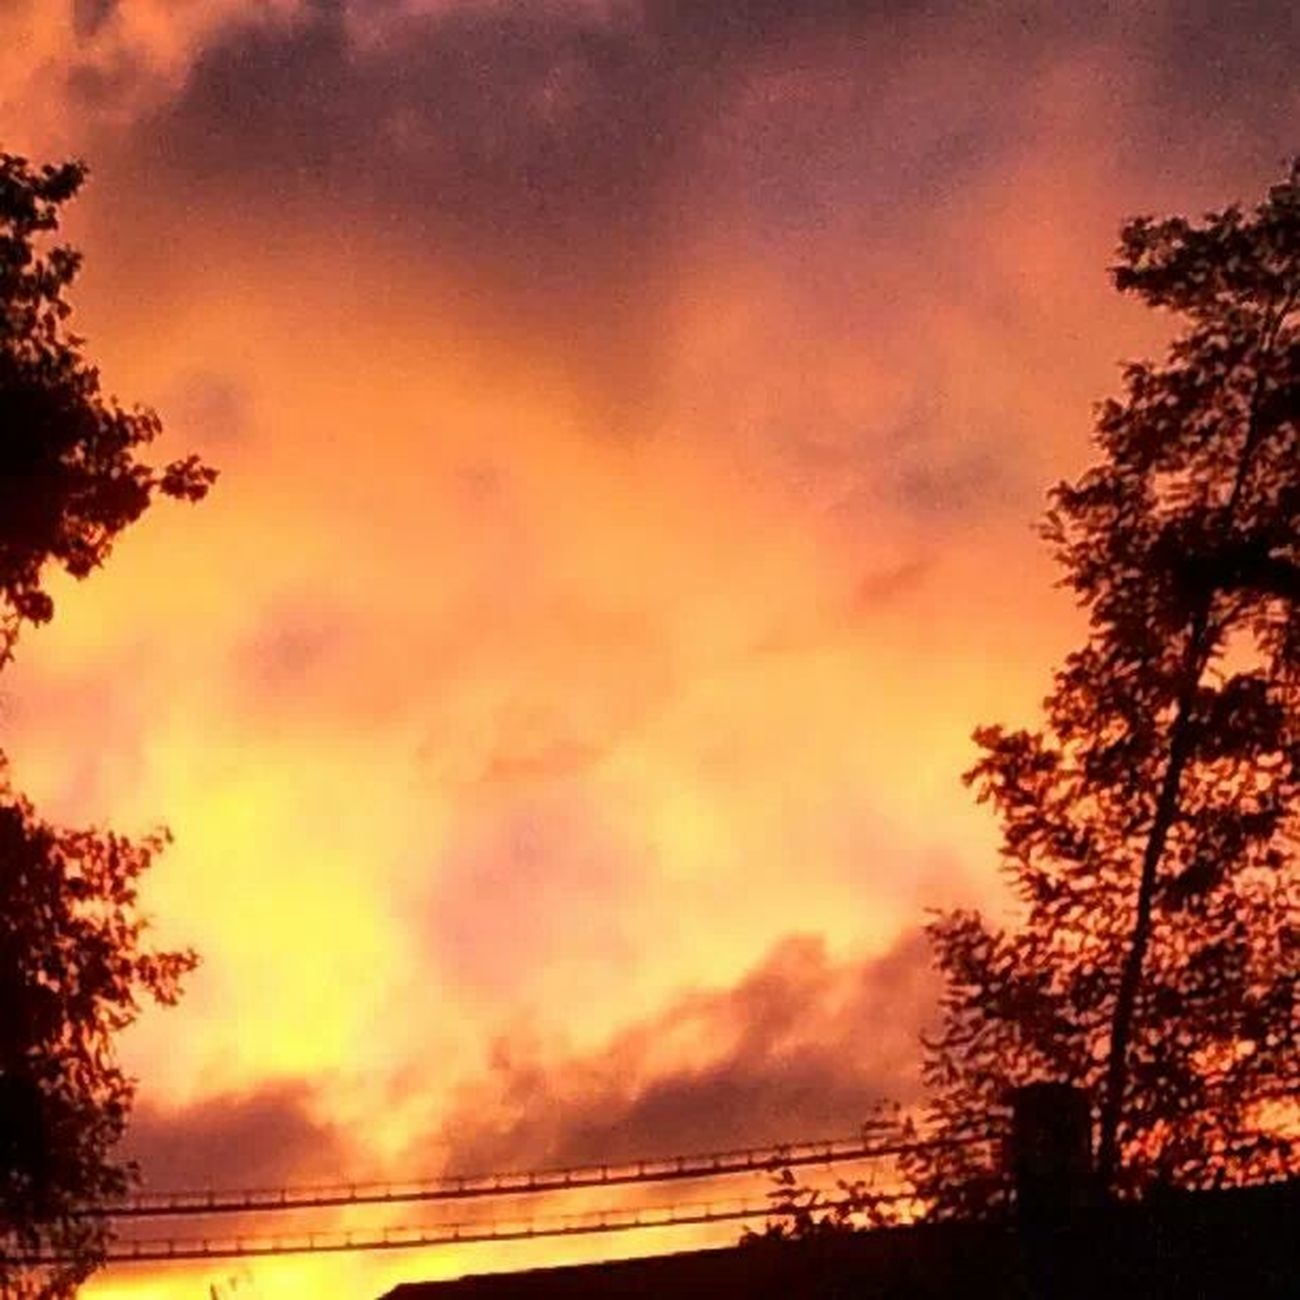 No Edits No Filters Clouds On Fire